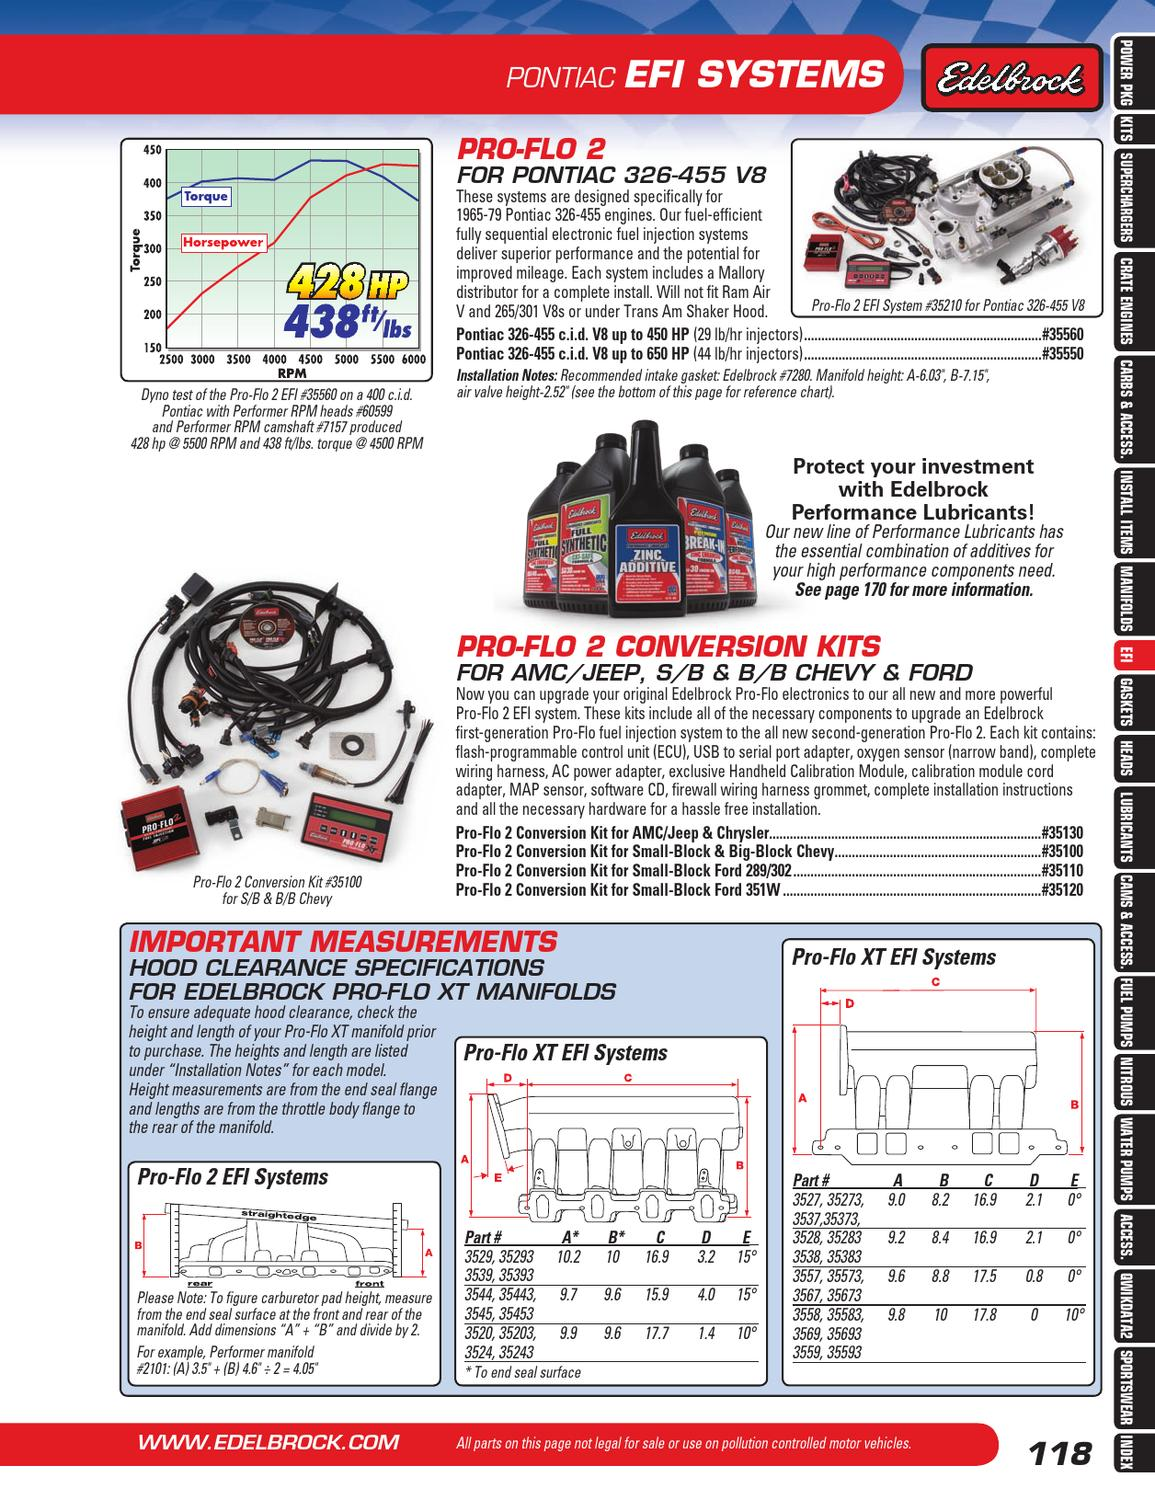 2012 Edelbrock Catalog by Robert Jackson - issuu